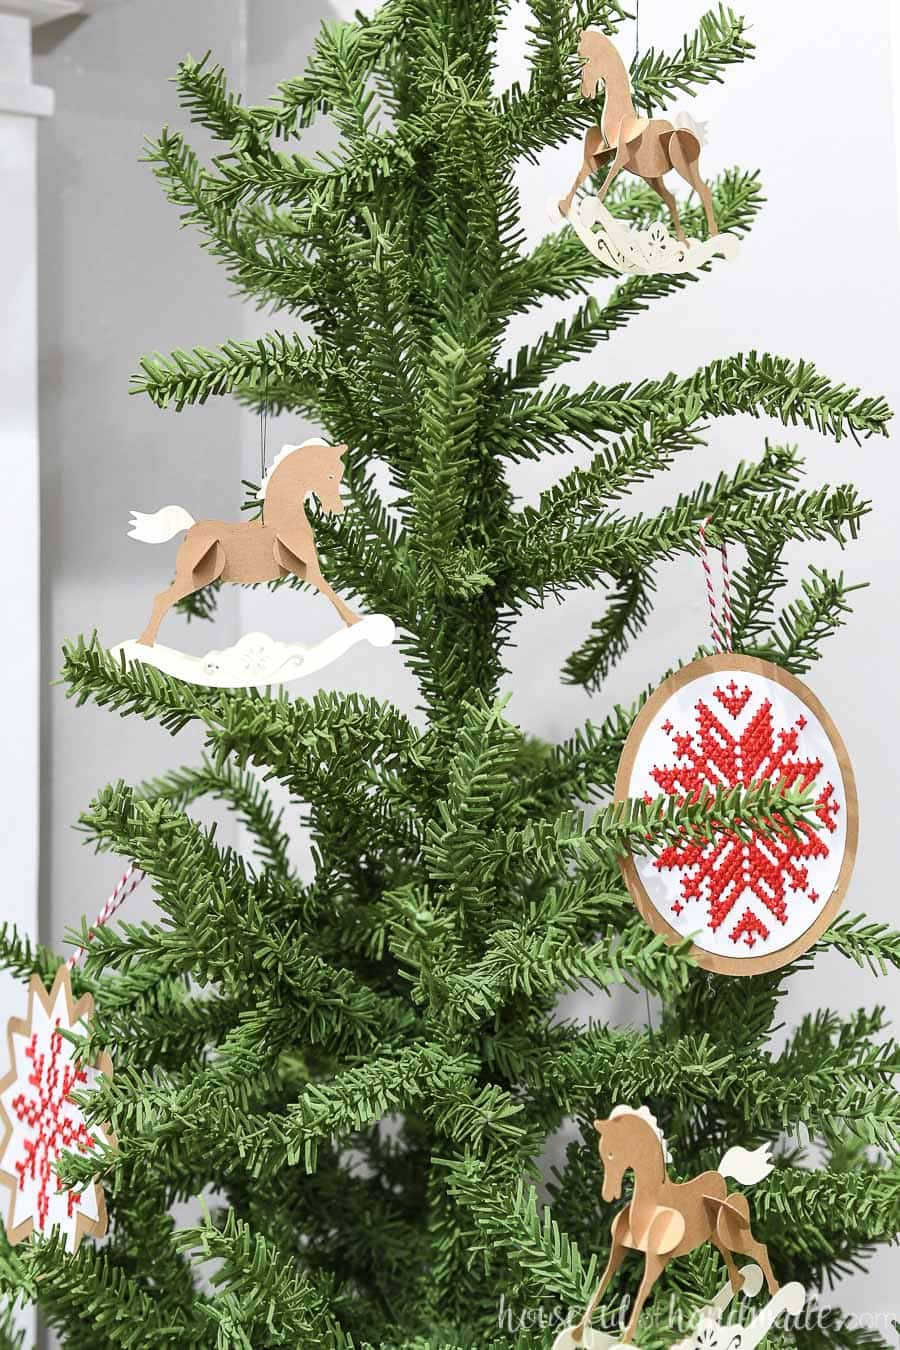 Christmas tree decorated with Scandinavian inspired ornaments.